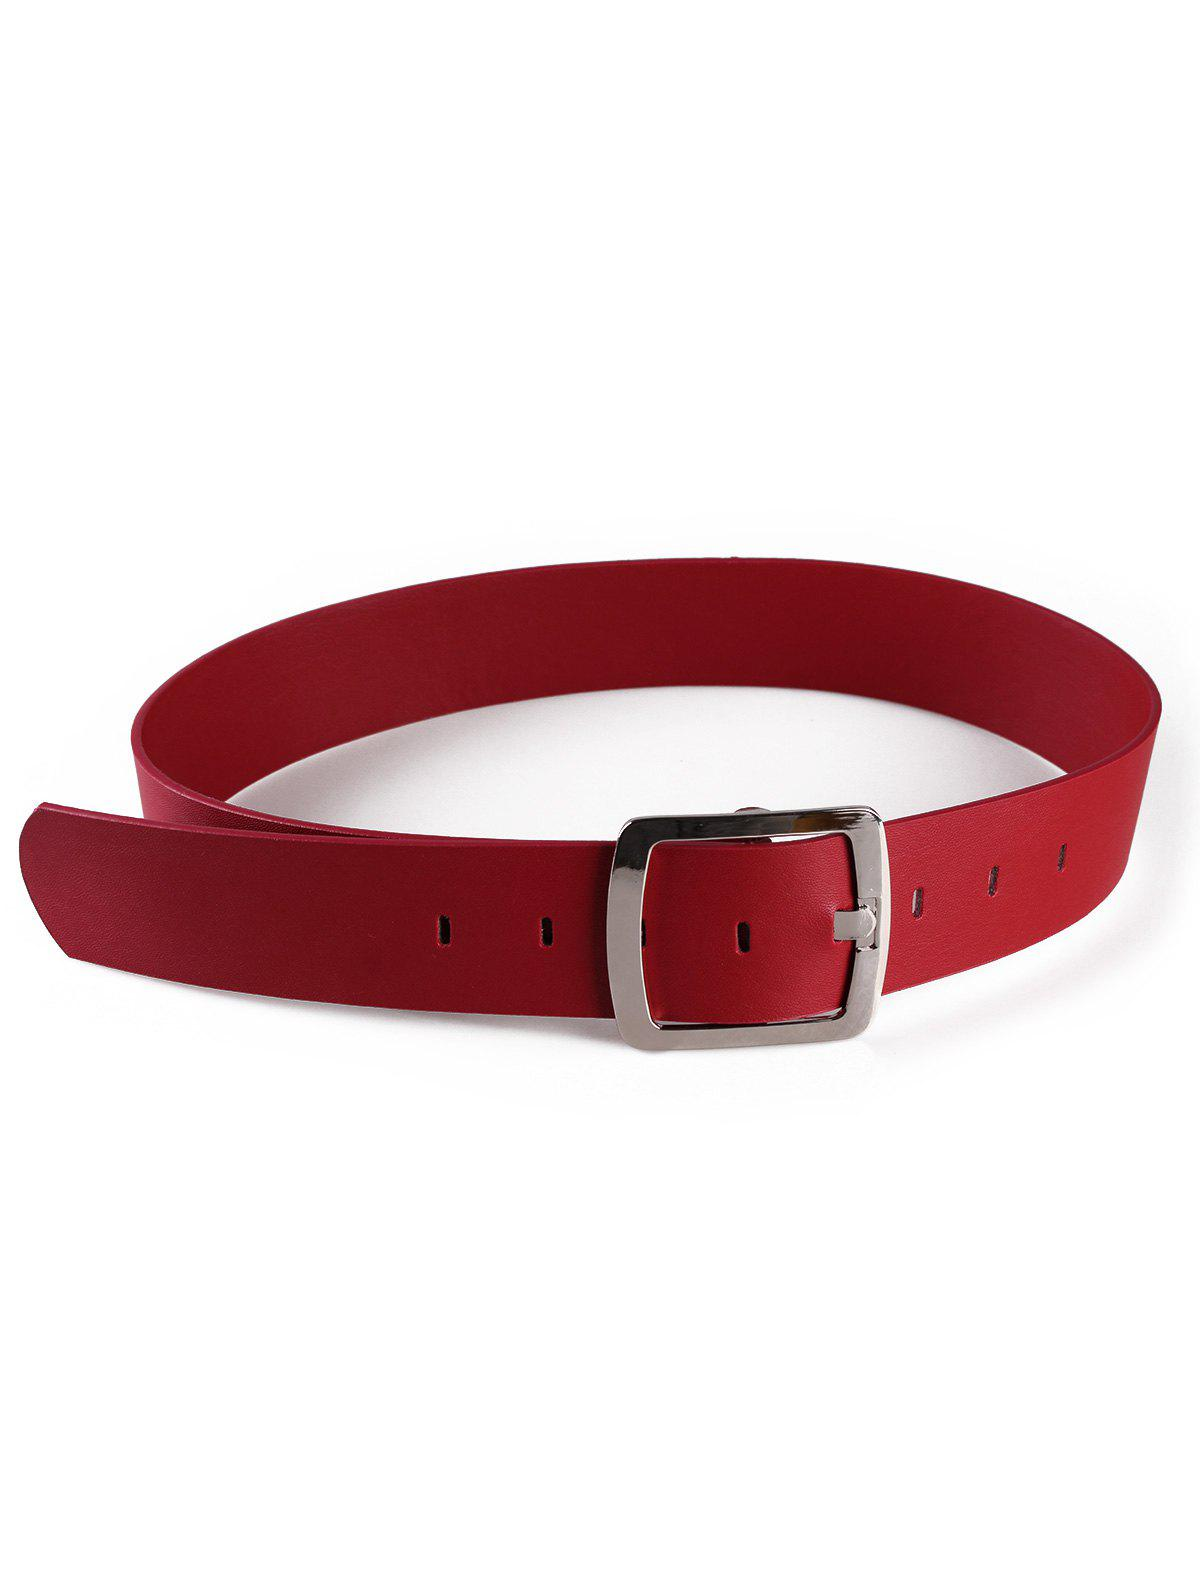 New Metal Square Buckle Faux Leather Waist Belt